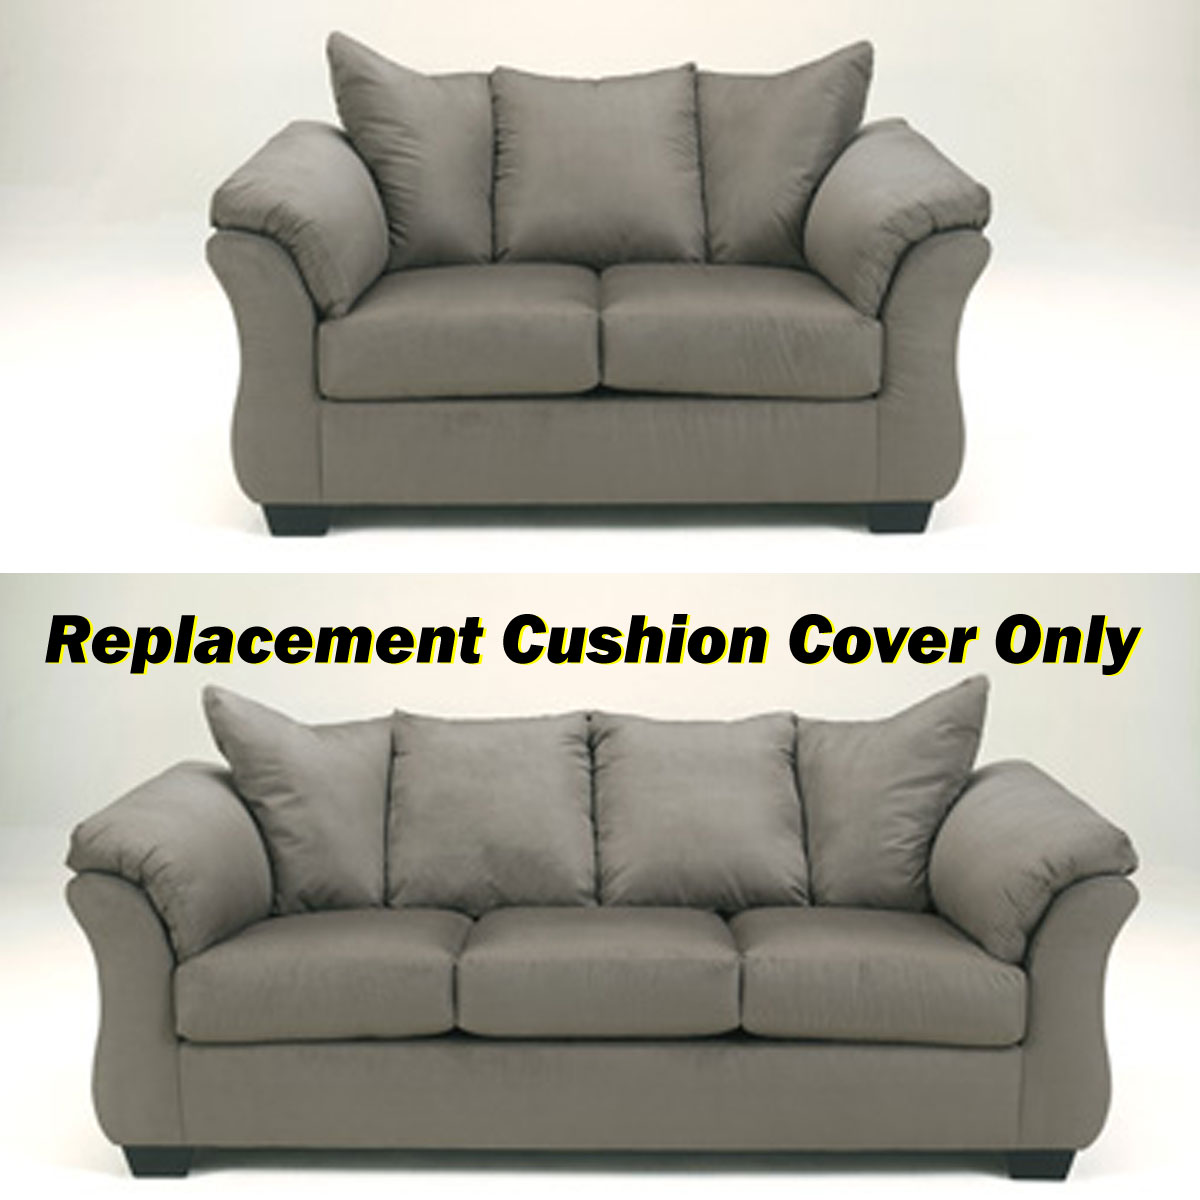 sofa cushion replacement service grey fabric for sofas ashley darcy cover only 7500538 or